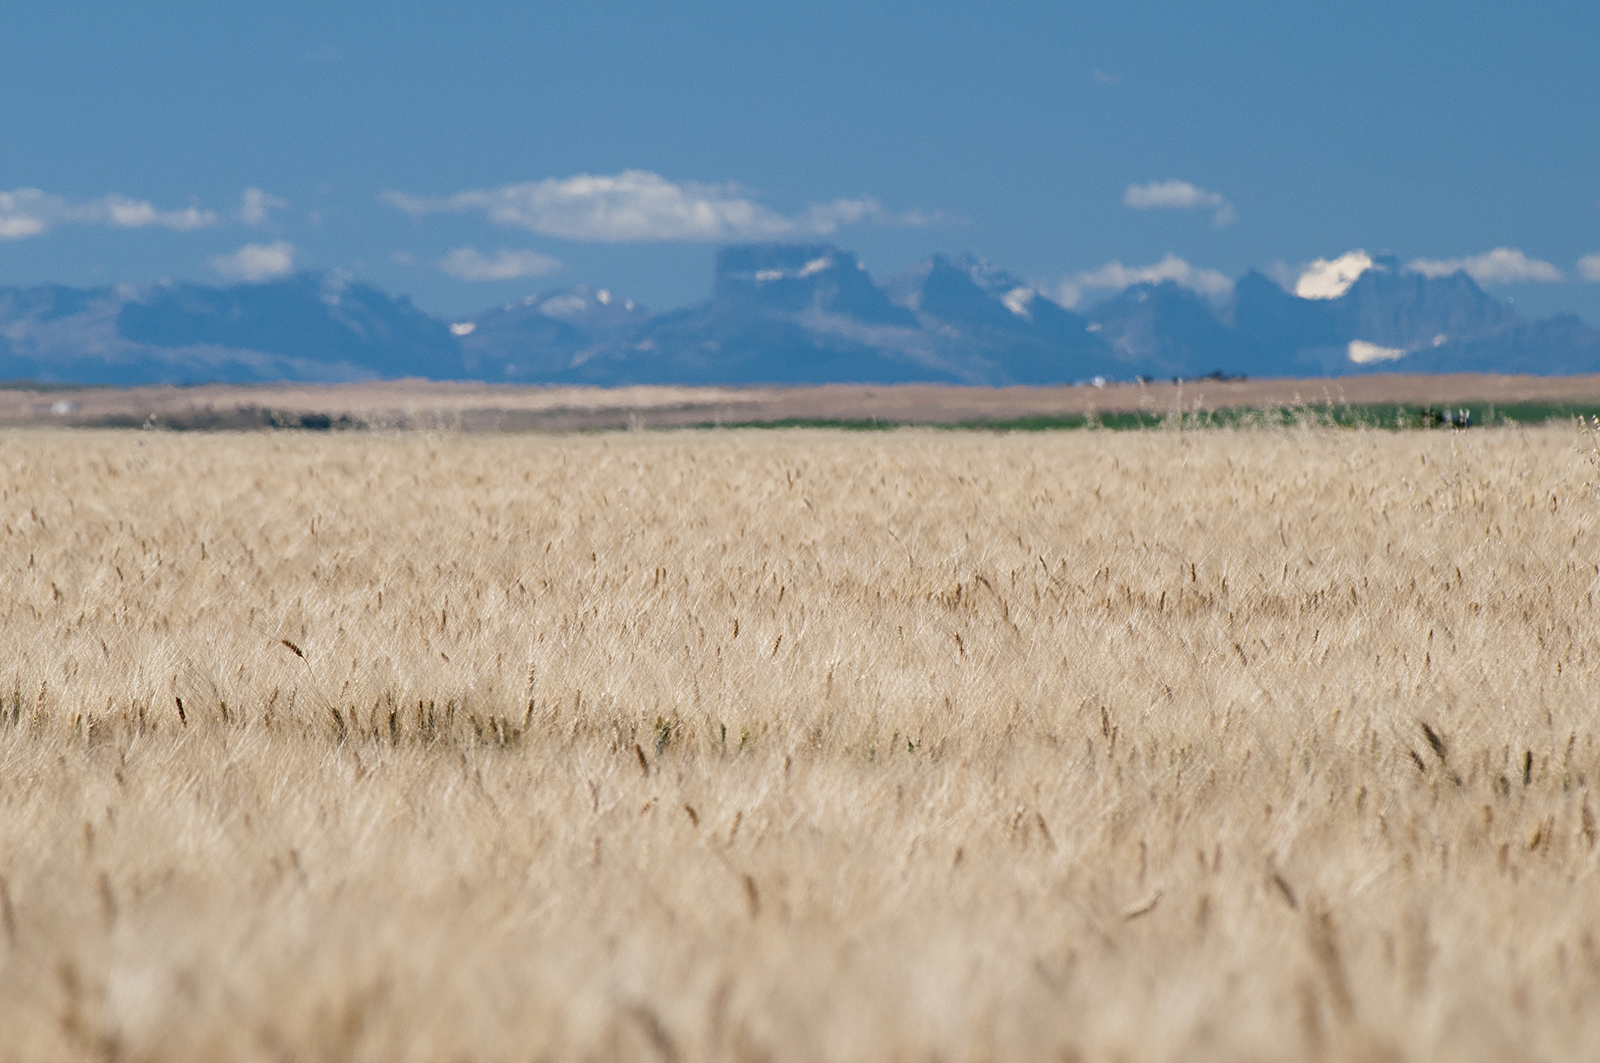 Wheat Field: Chief Mountain